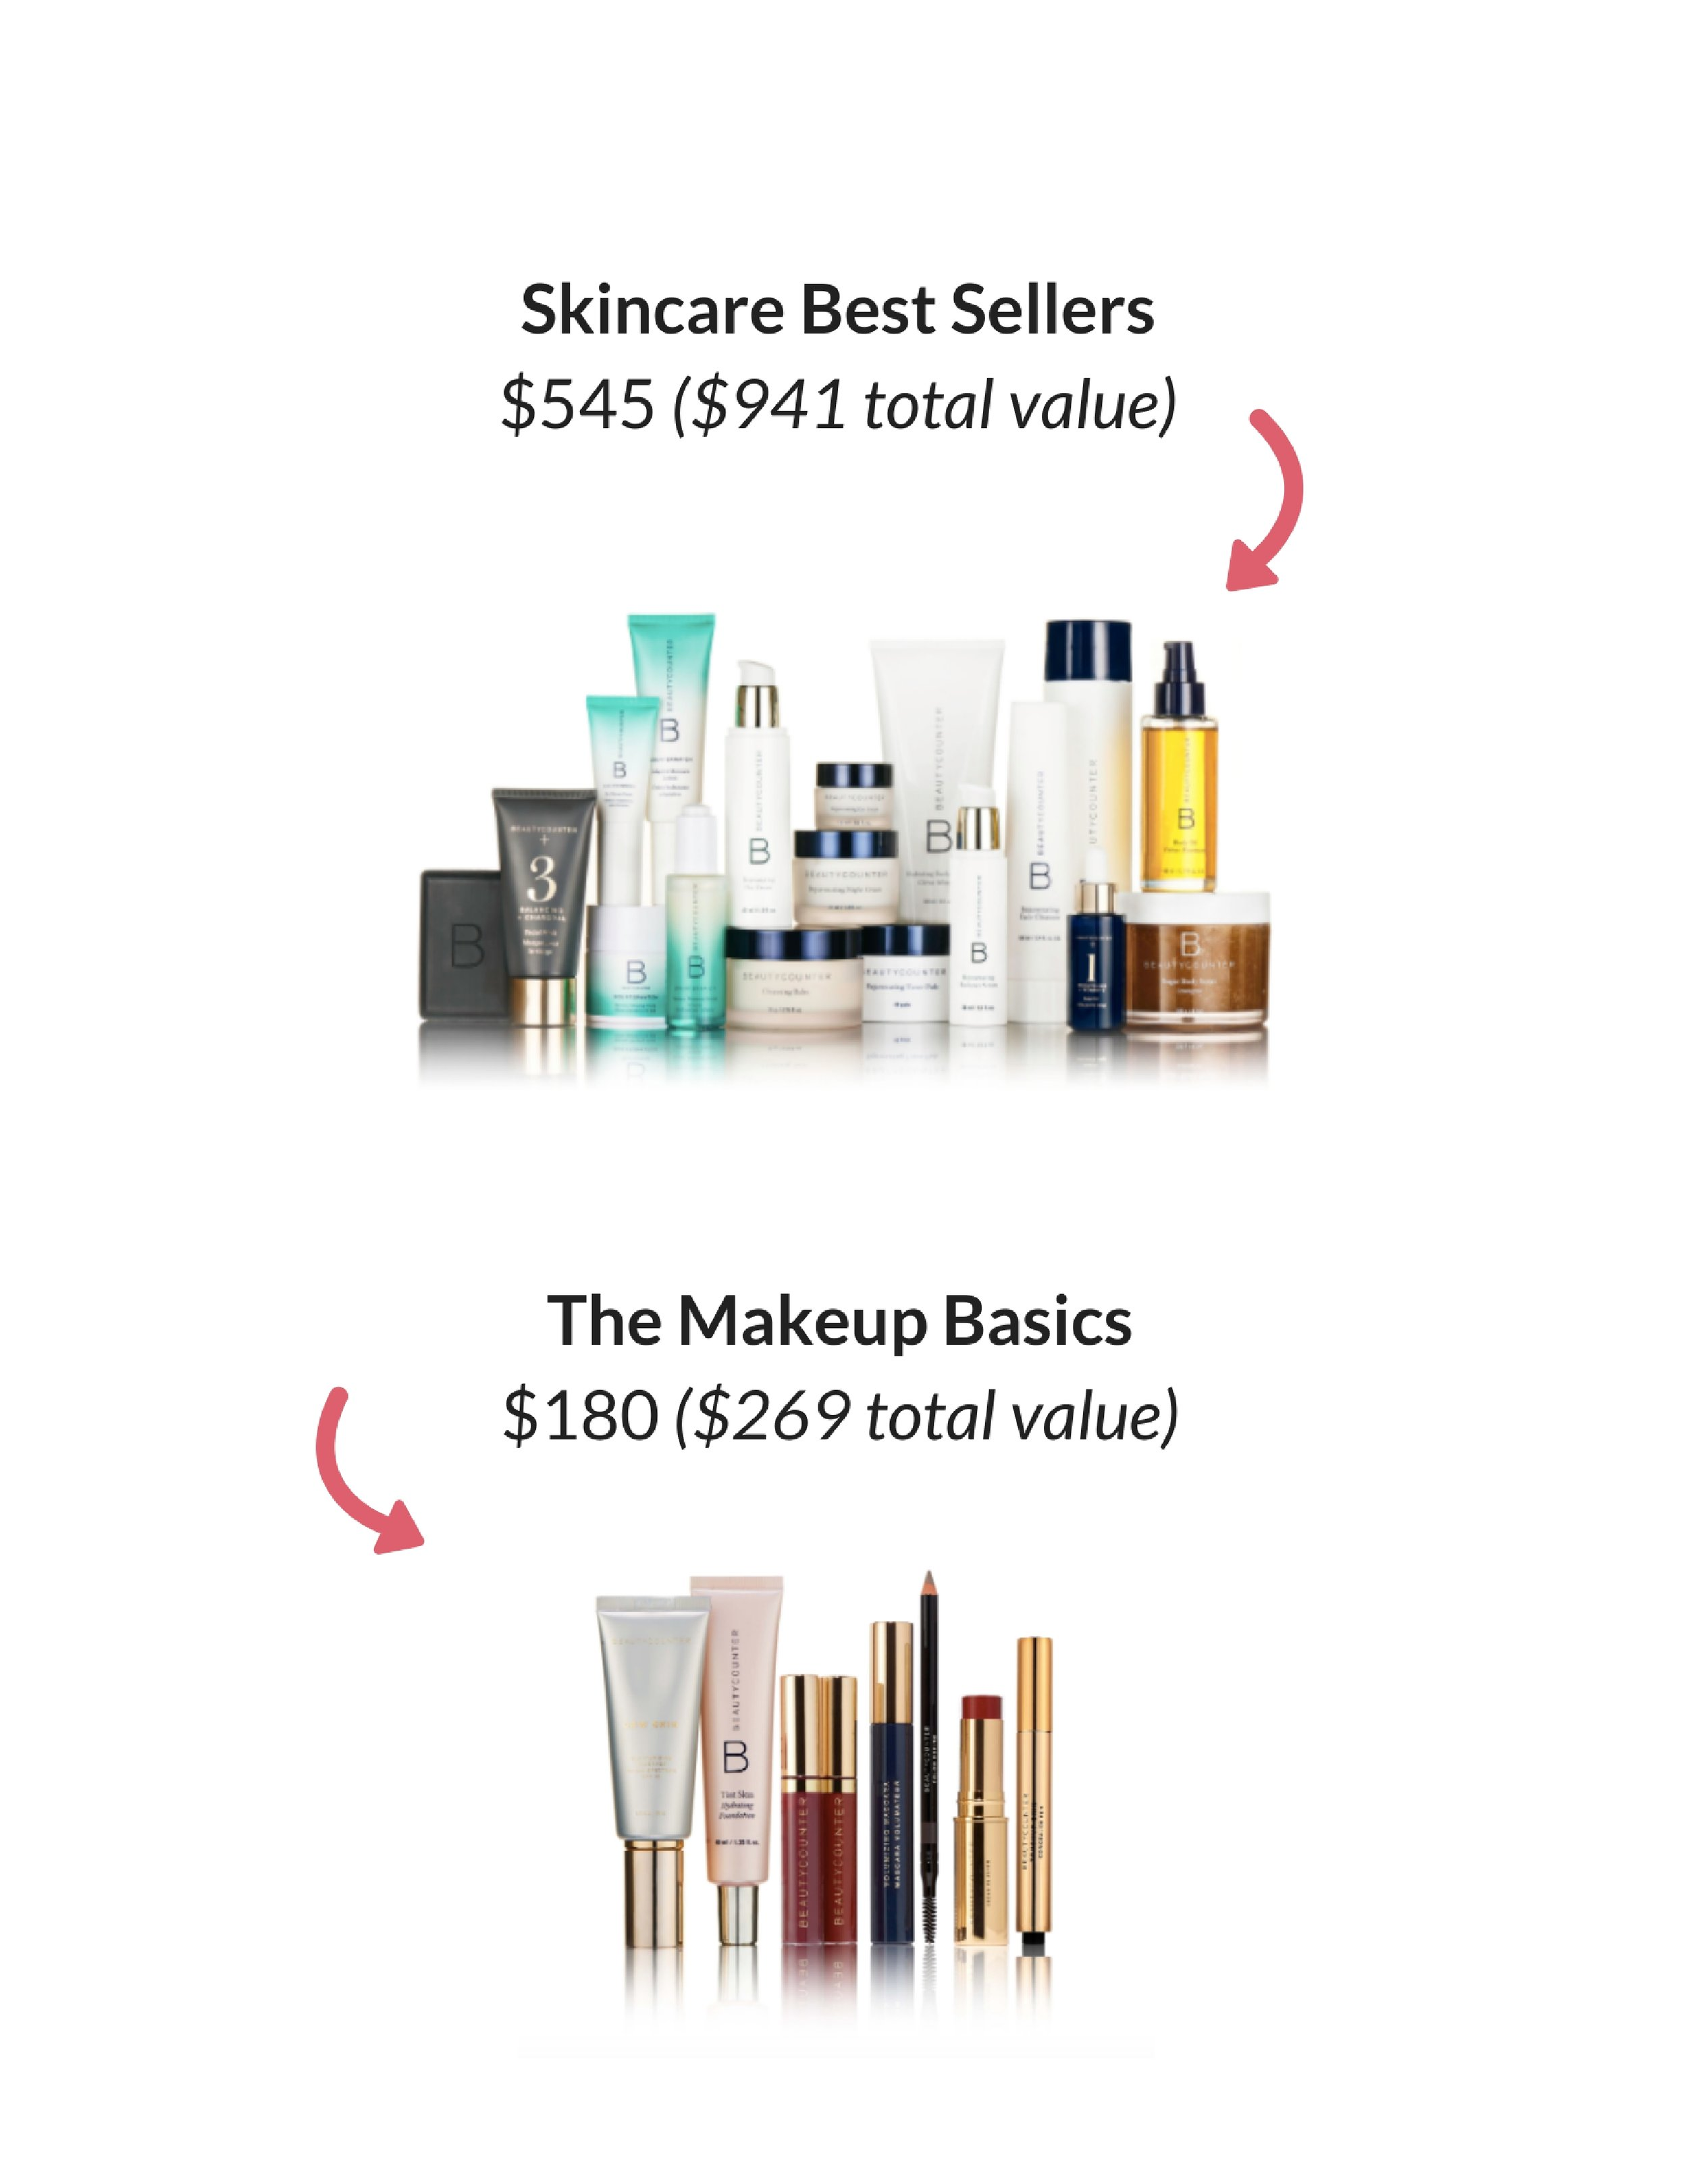 Sharing the mission of safer products is the perfect complement to any wellness business. If you haven't experienced the magic of Beautycounter products, let me get some samples into your hands! Email hello@andreanordling.com and pin this for later!